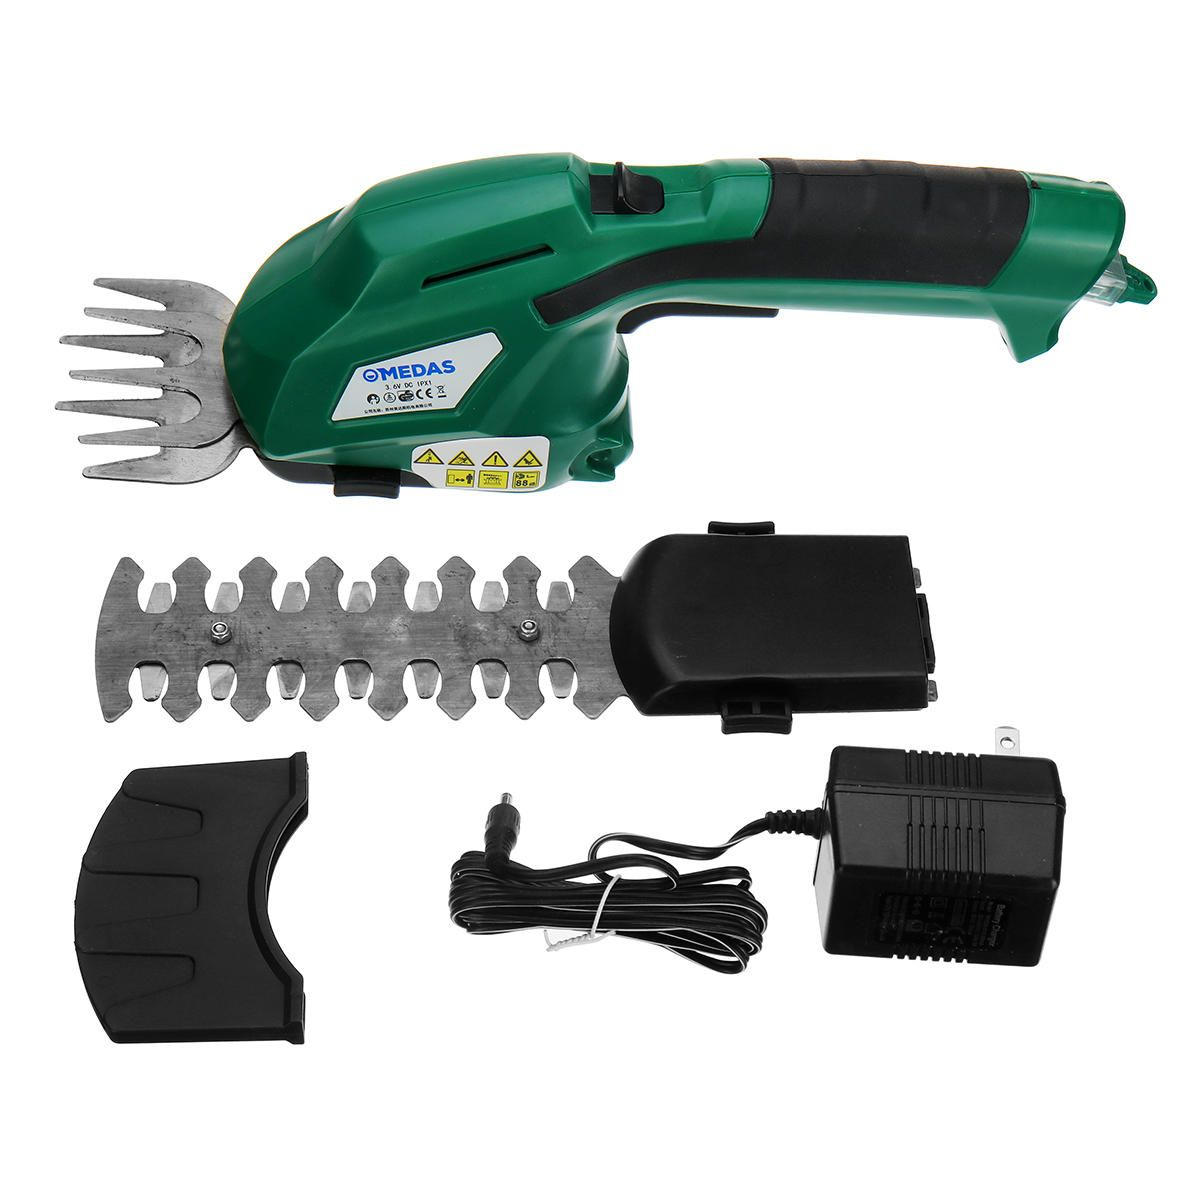 2 in 1 Li Ion Battery Pruning Tool Cordless Hedge Grass Shears Trimmers Cutters Shrub Tool